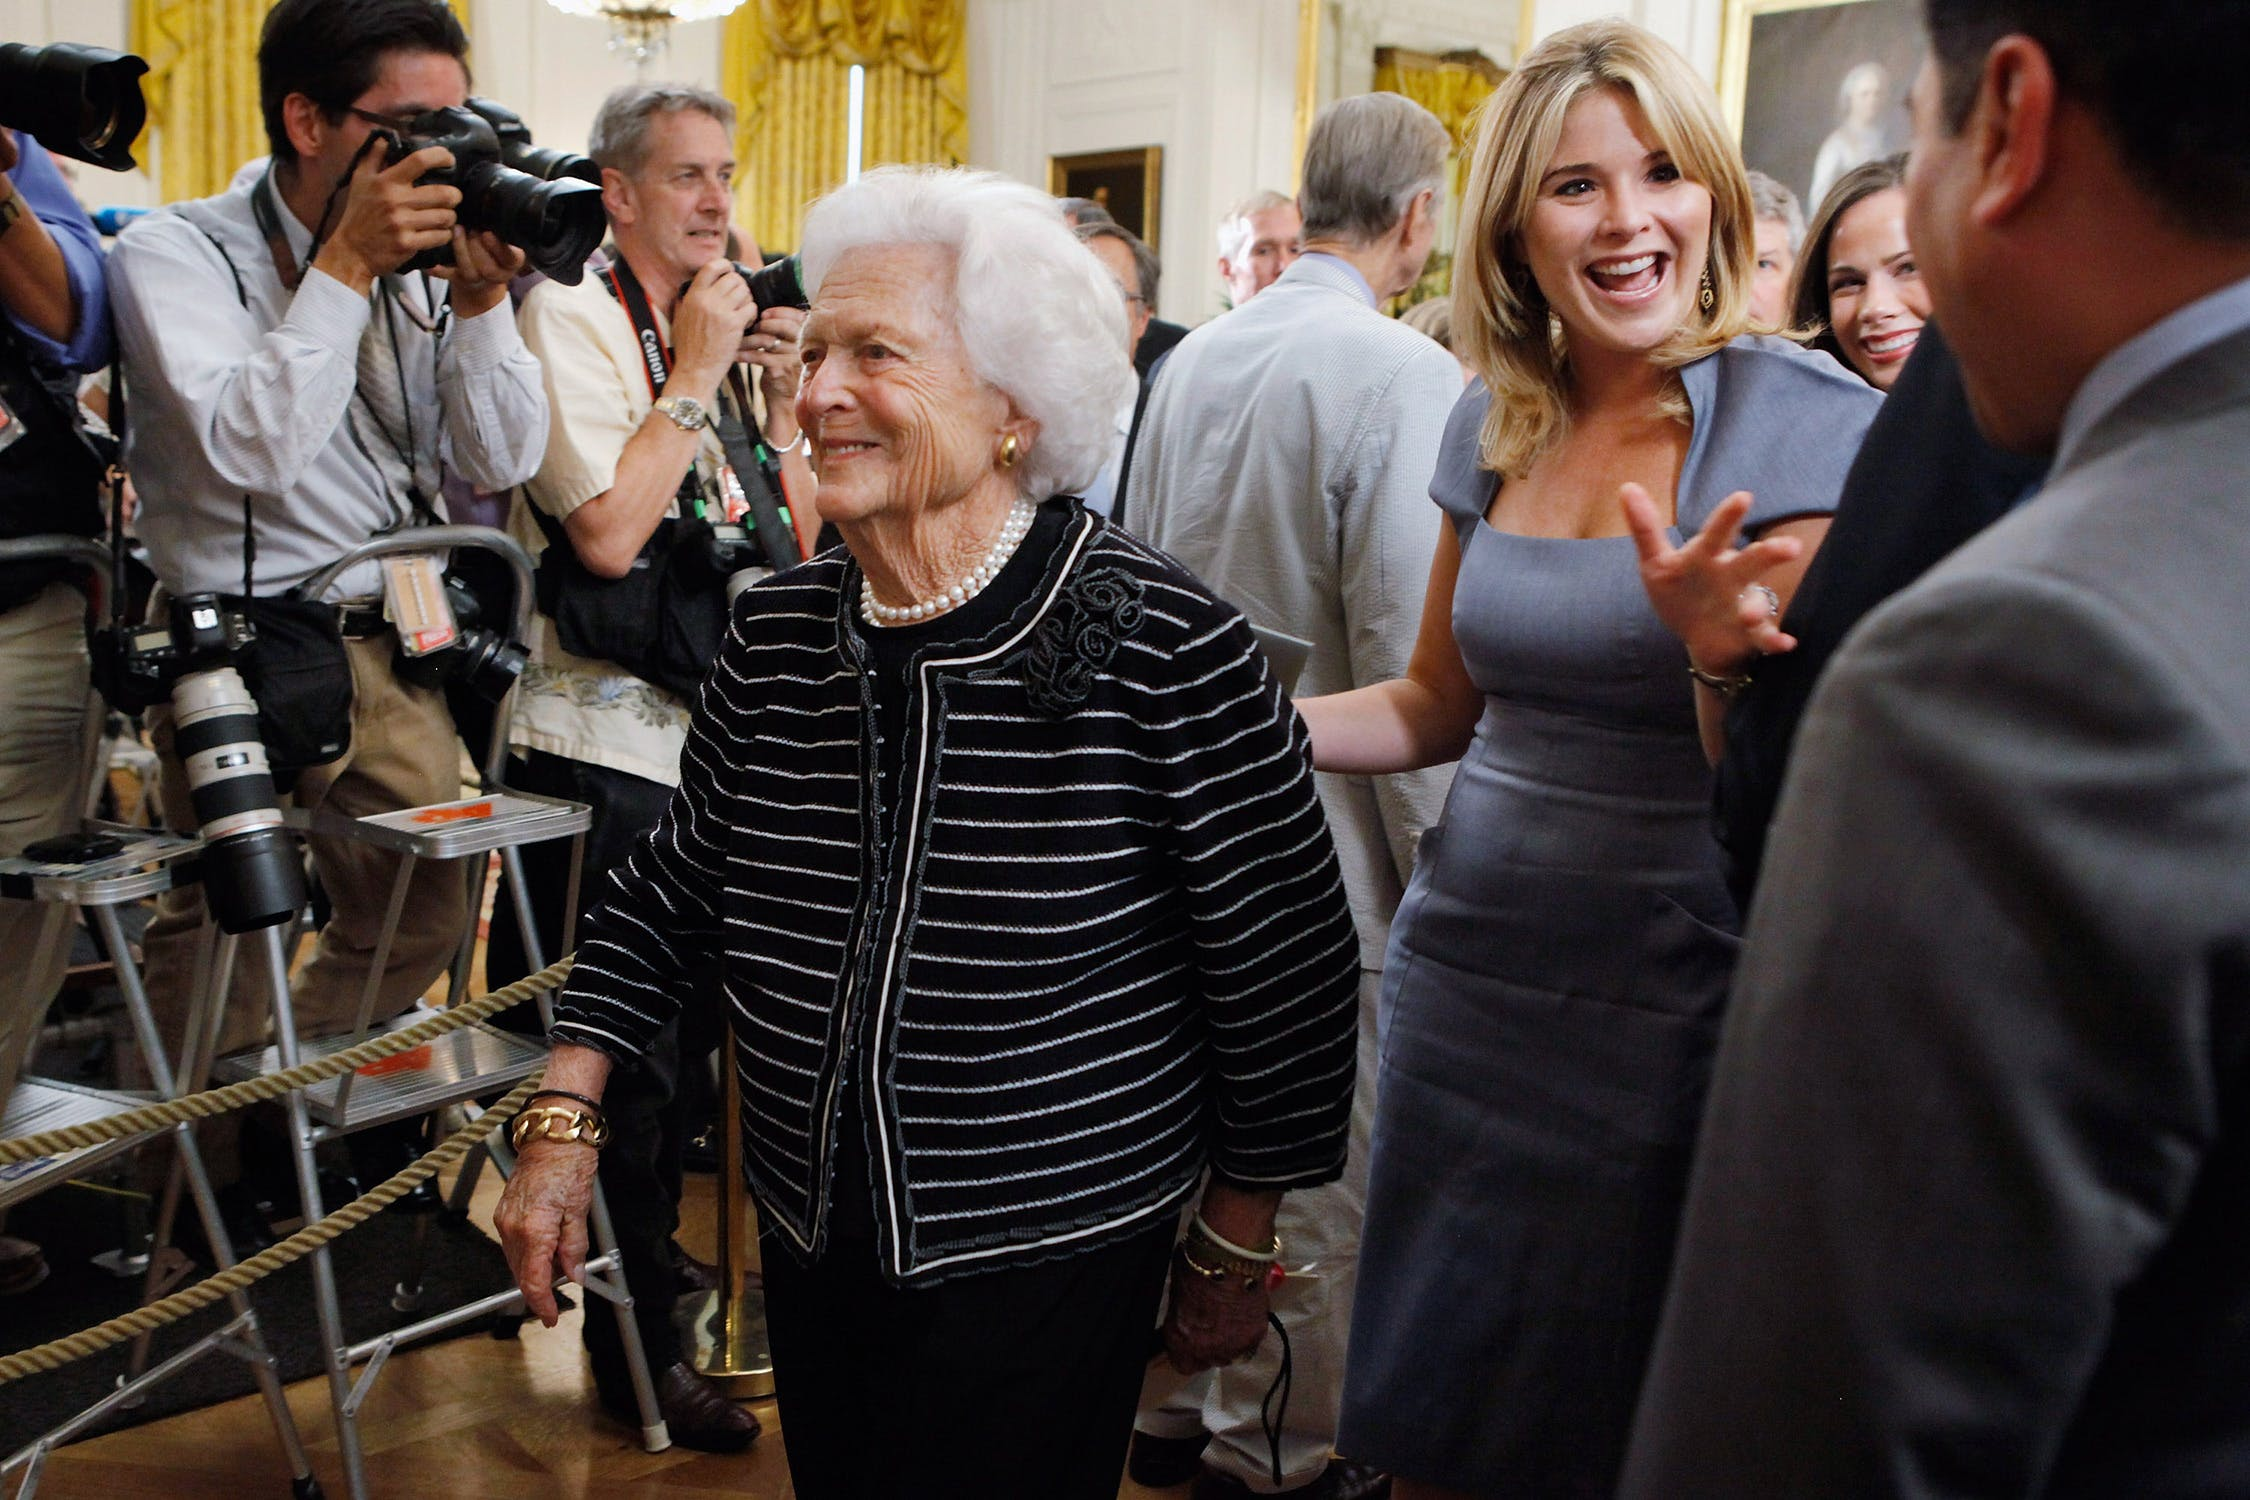 Barbara Bush and granddaughter Jenna Bush Hager walking through a crowd at the White House